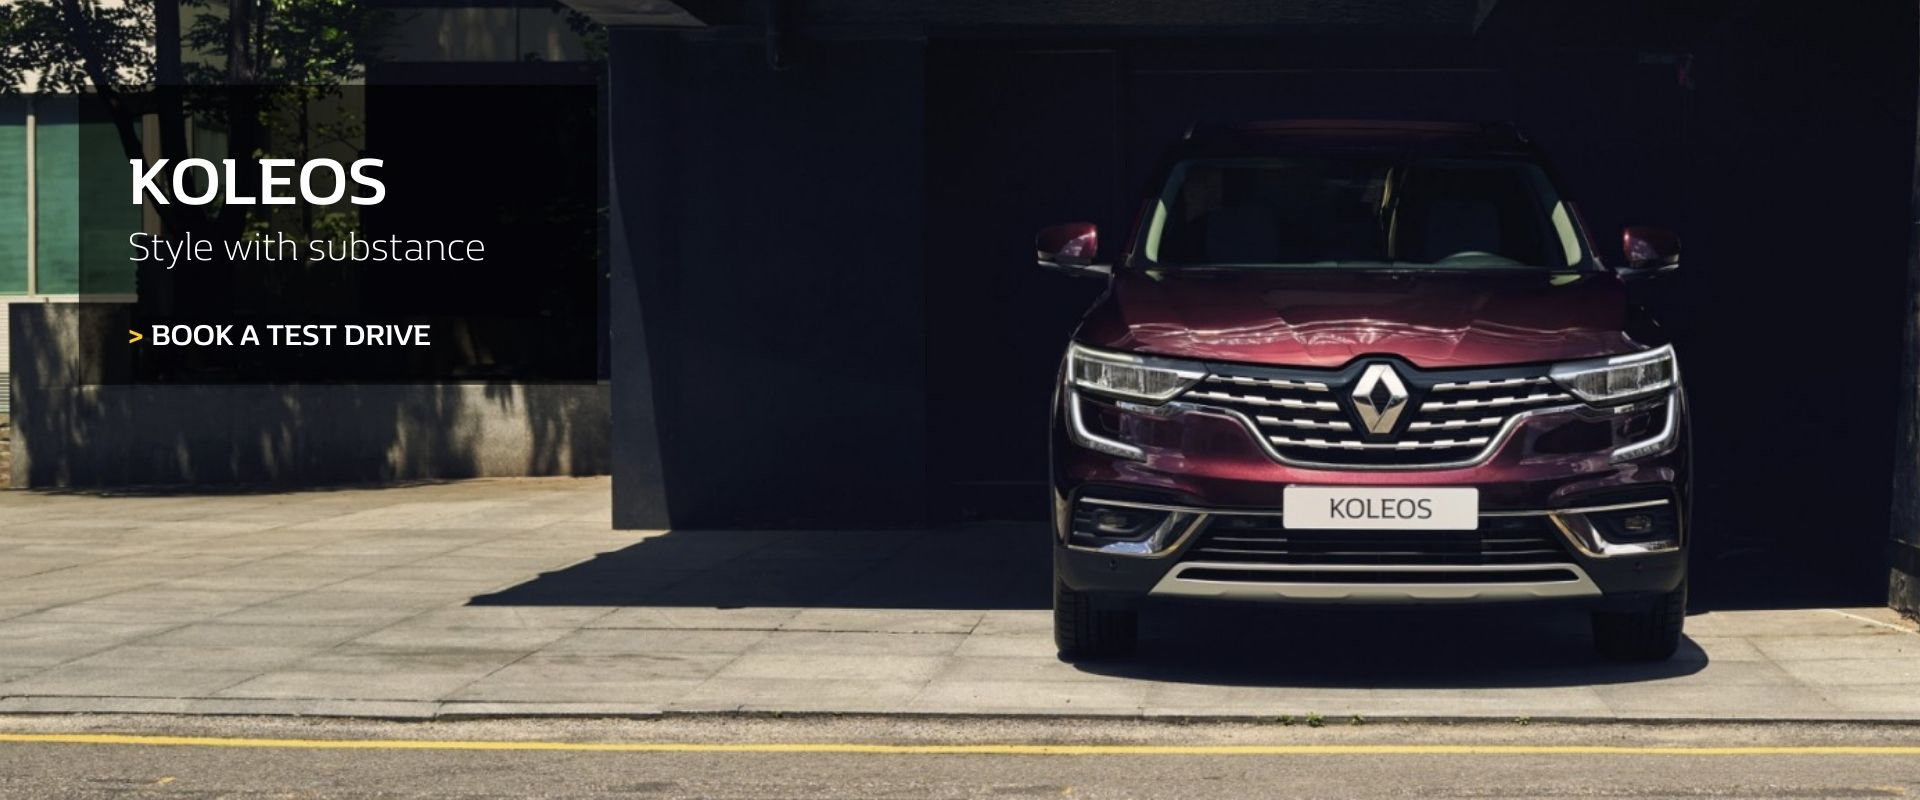 Renault Koleos - Style with substance - Book a test drive today at Metro Renault